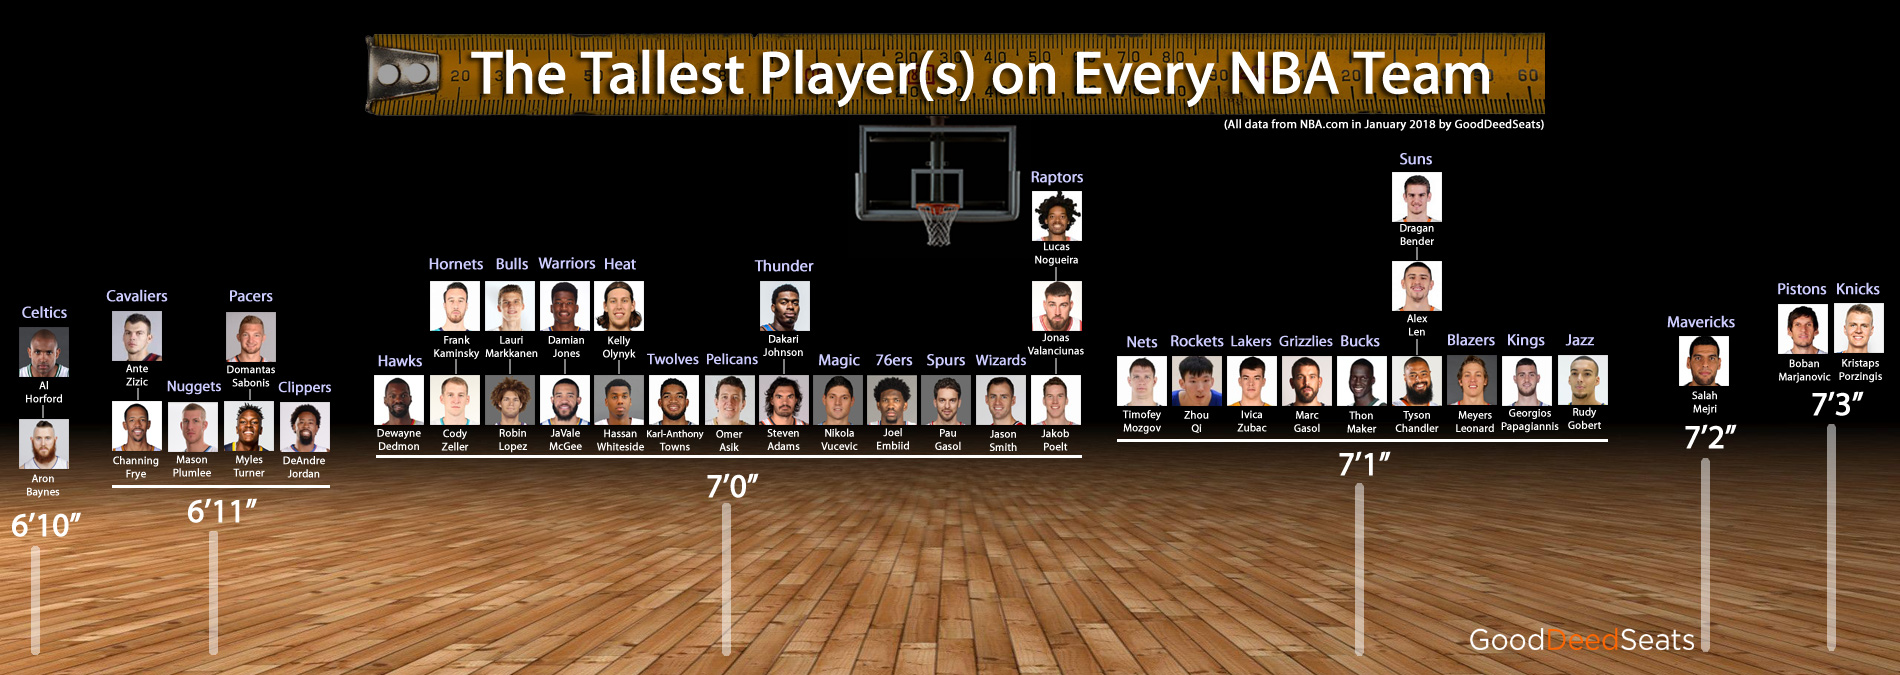 The Tallest Player(s) on Every NBA Team & Their Heights - TalkBasket net